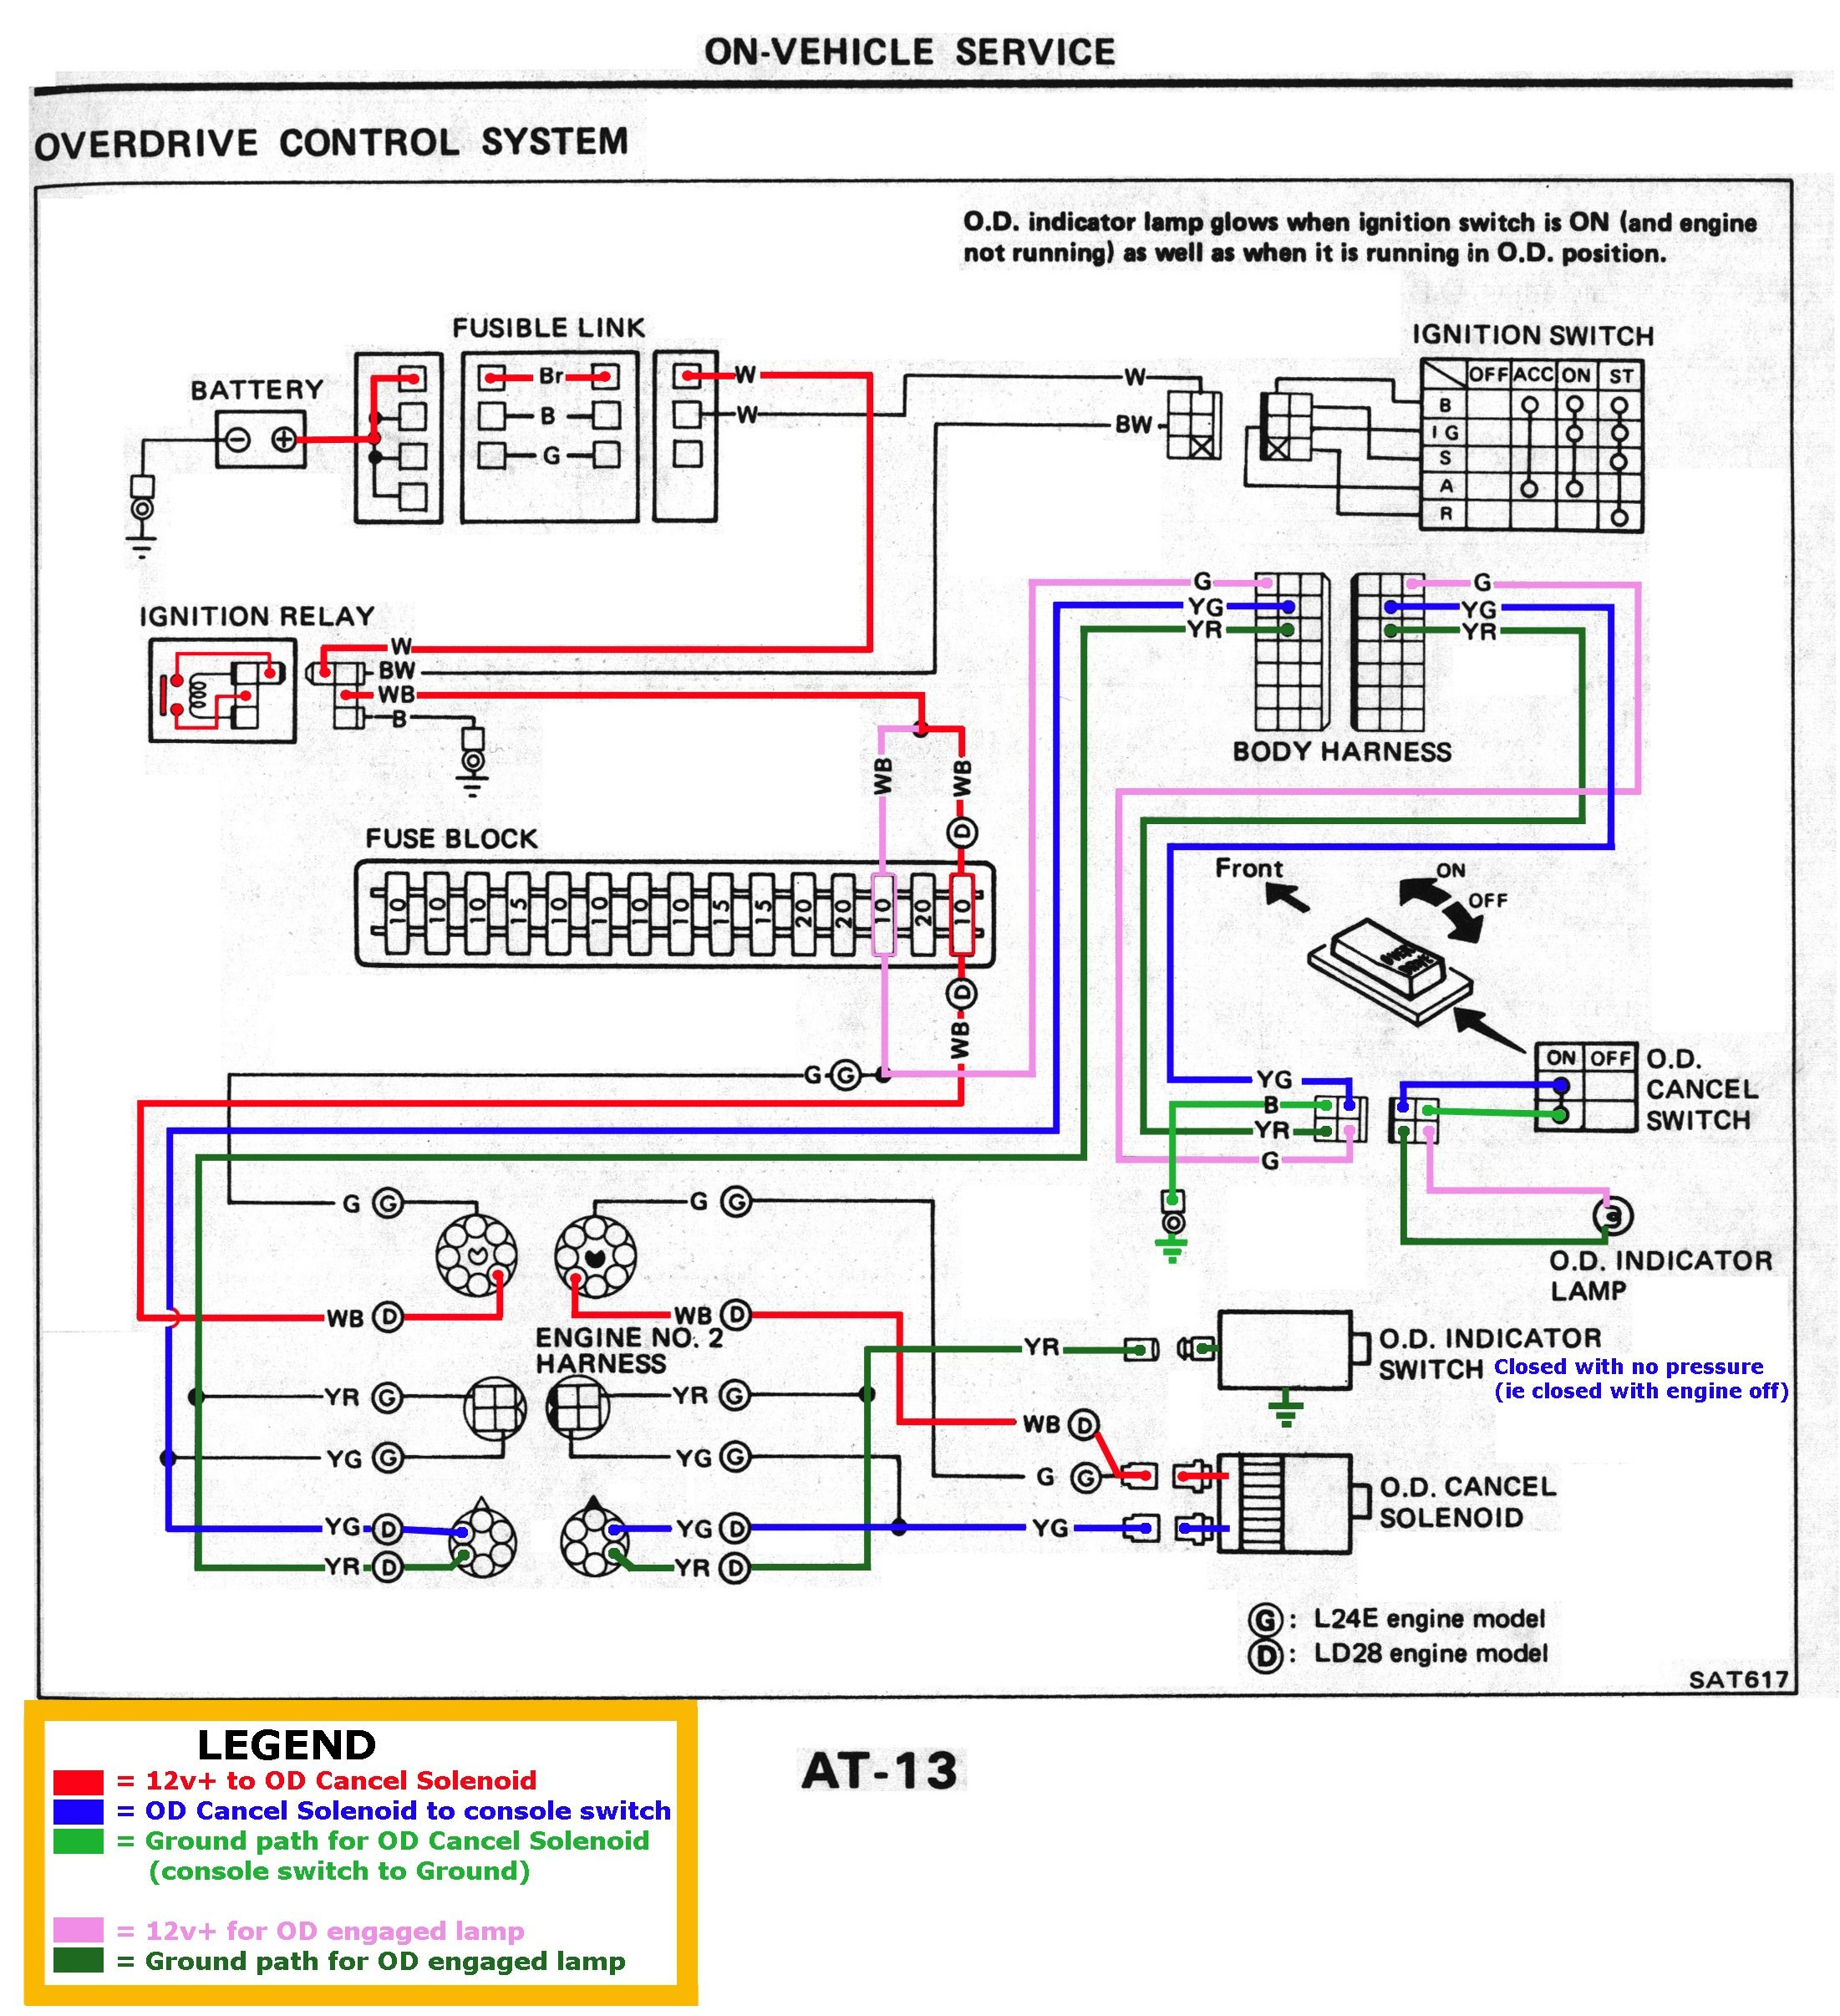 nissan titan trailer wiring harness diagram Download-Trailer Wiring Diagram 1997 Nissan Pickup New Nissan Sentra Engine Diagram 200sx Engine Wiring Harness Get 15-l